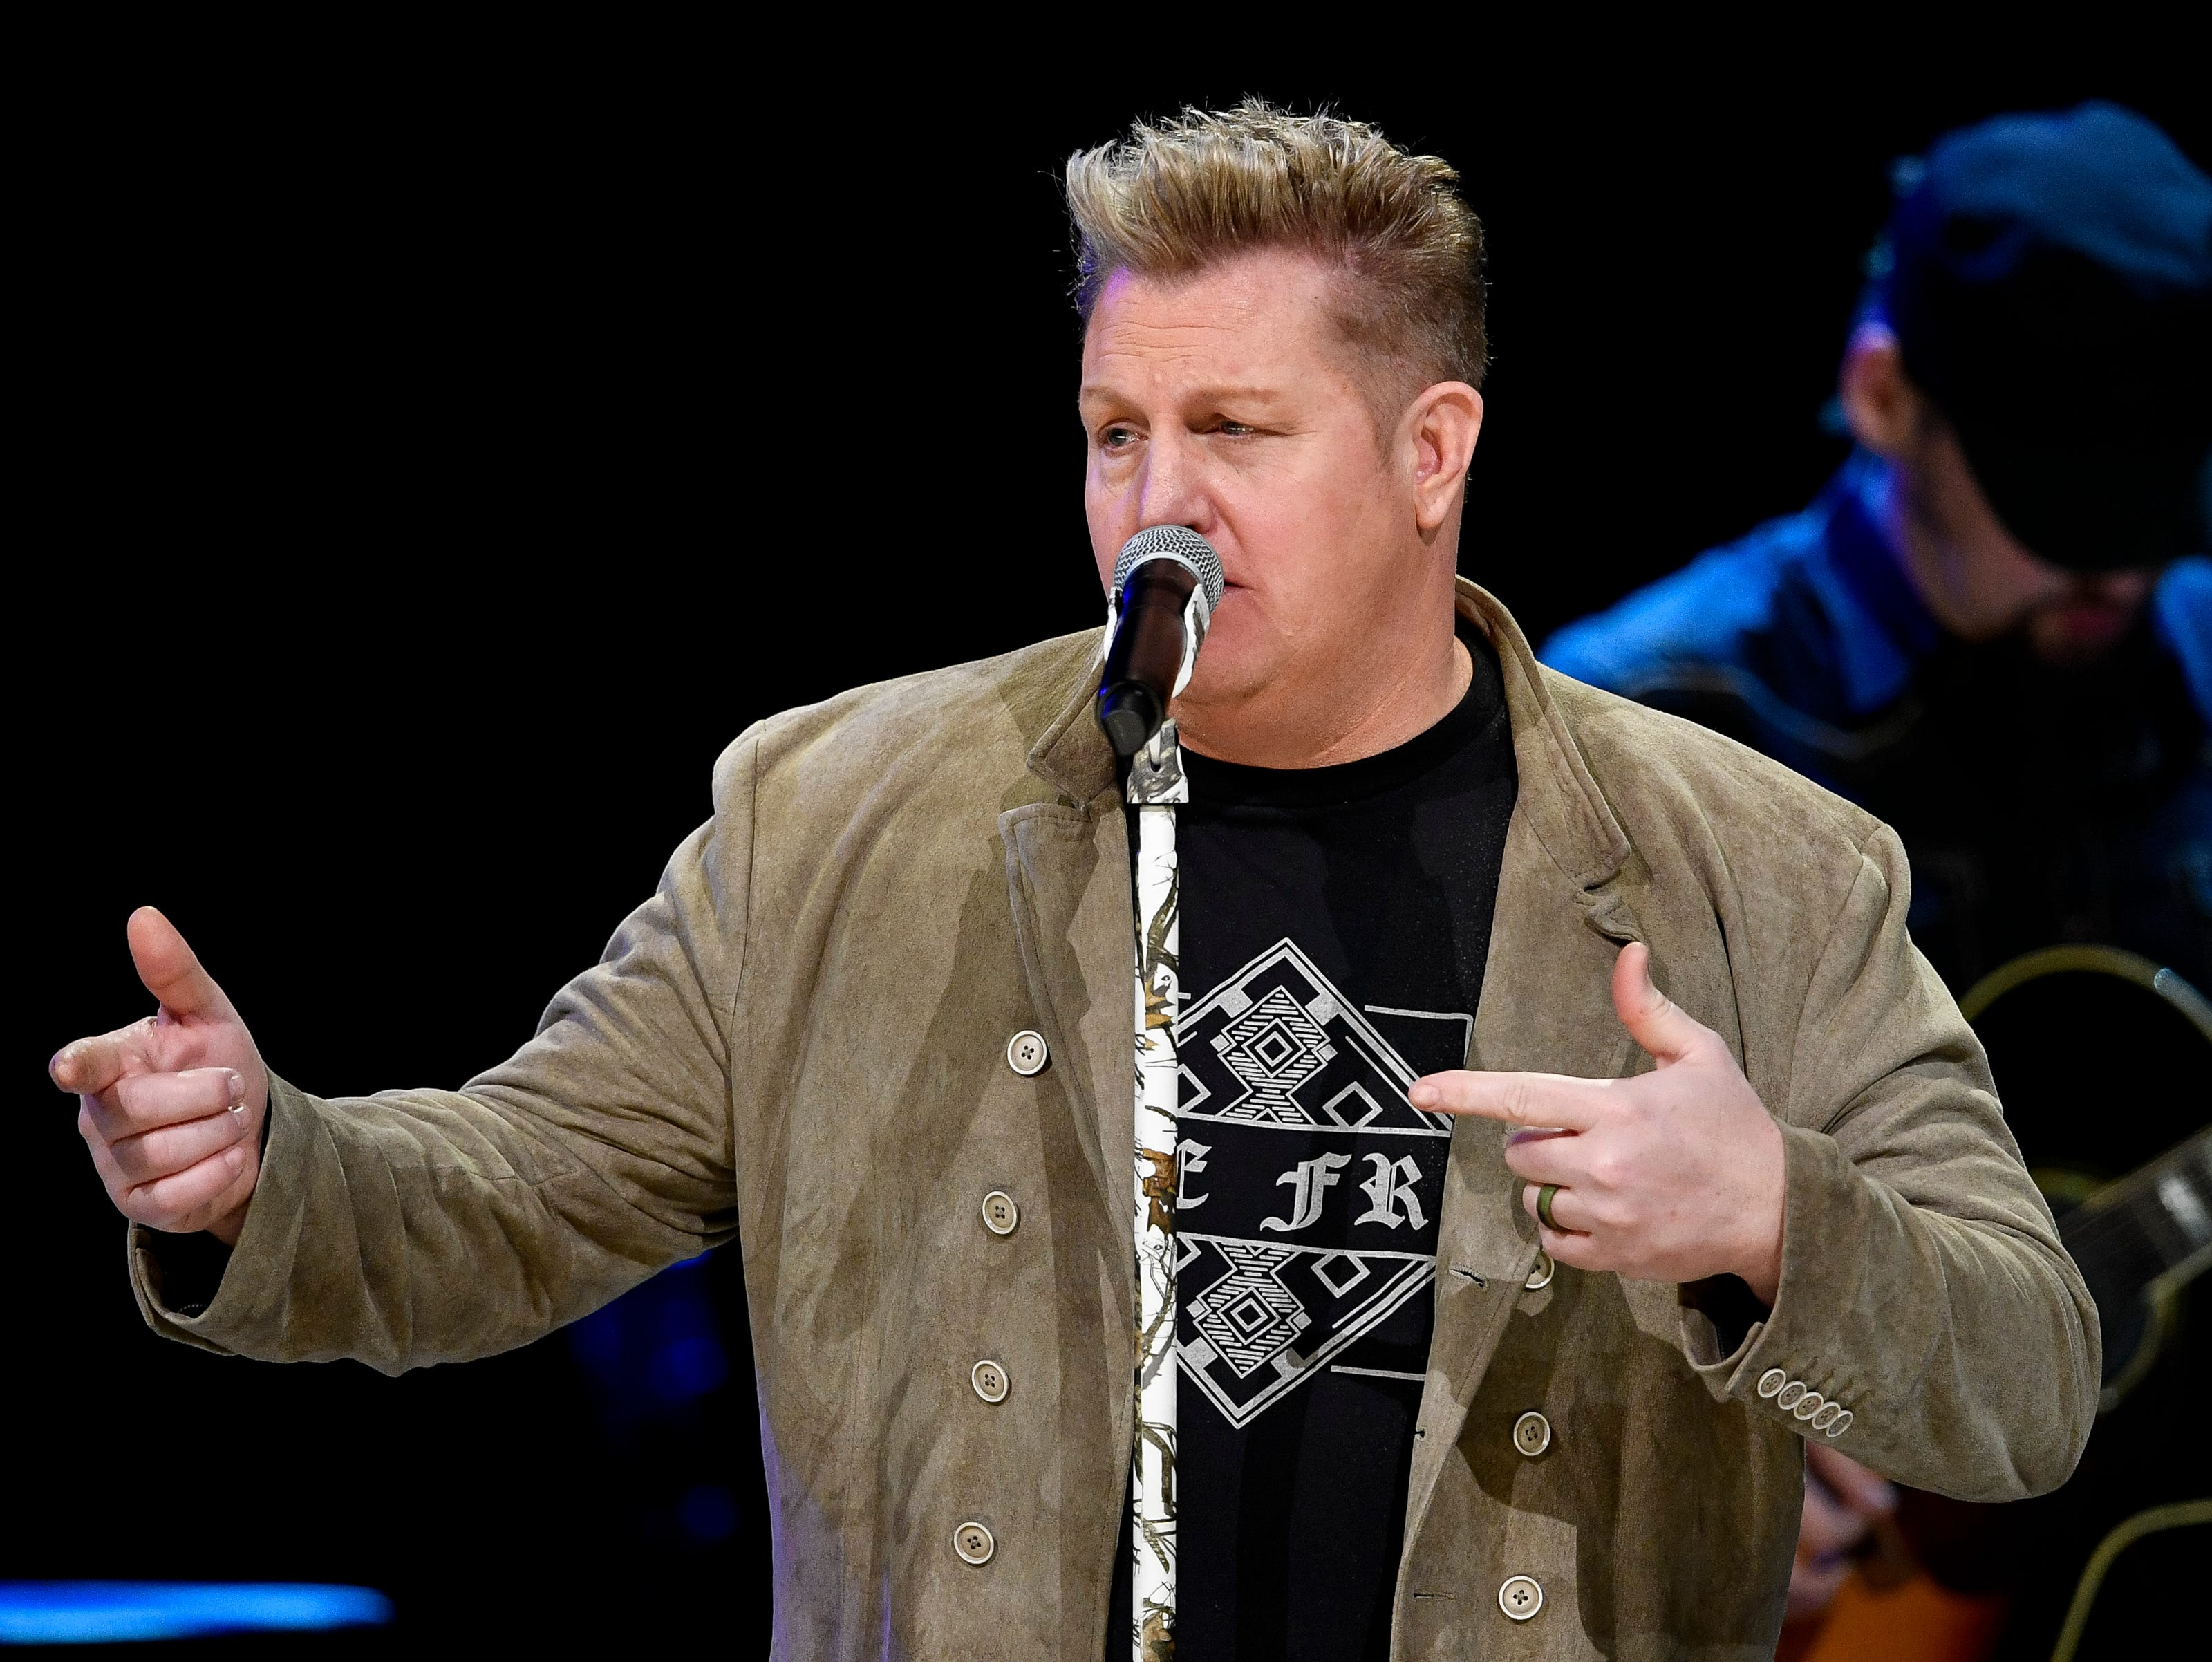 Rascal Flatts performs during the C'Ya On The Flipside Benefit Concert at the Grand Ole Opry House in Nashville, Tenn., Wednesday, Jan. 9, 2019.